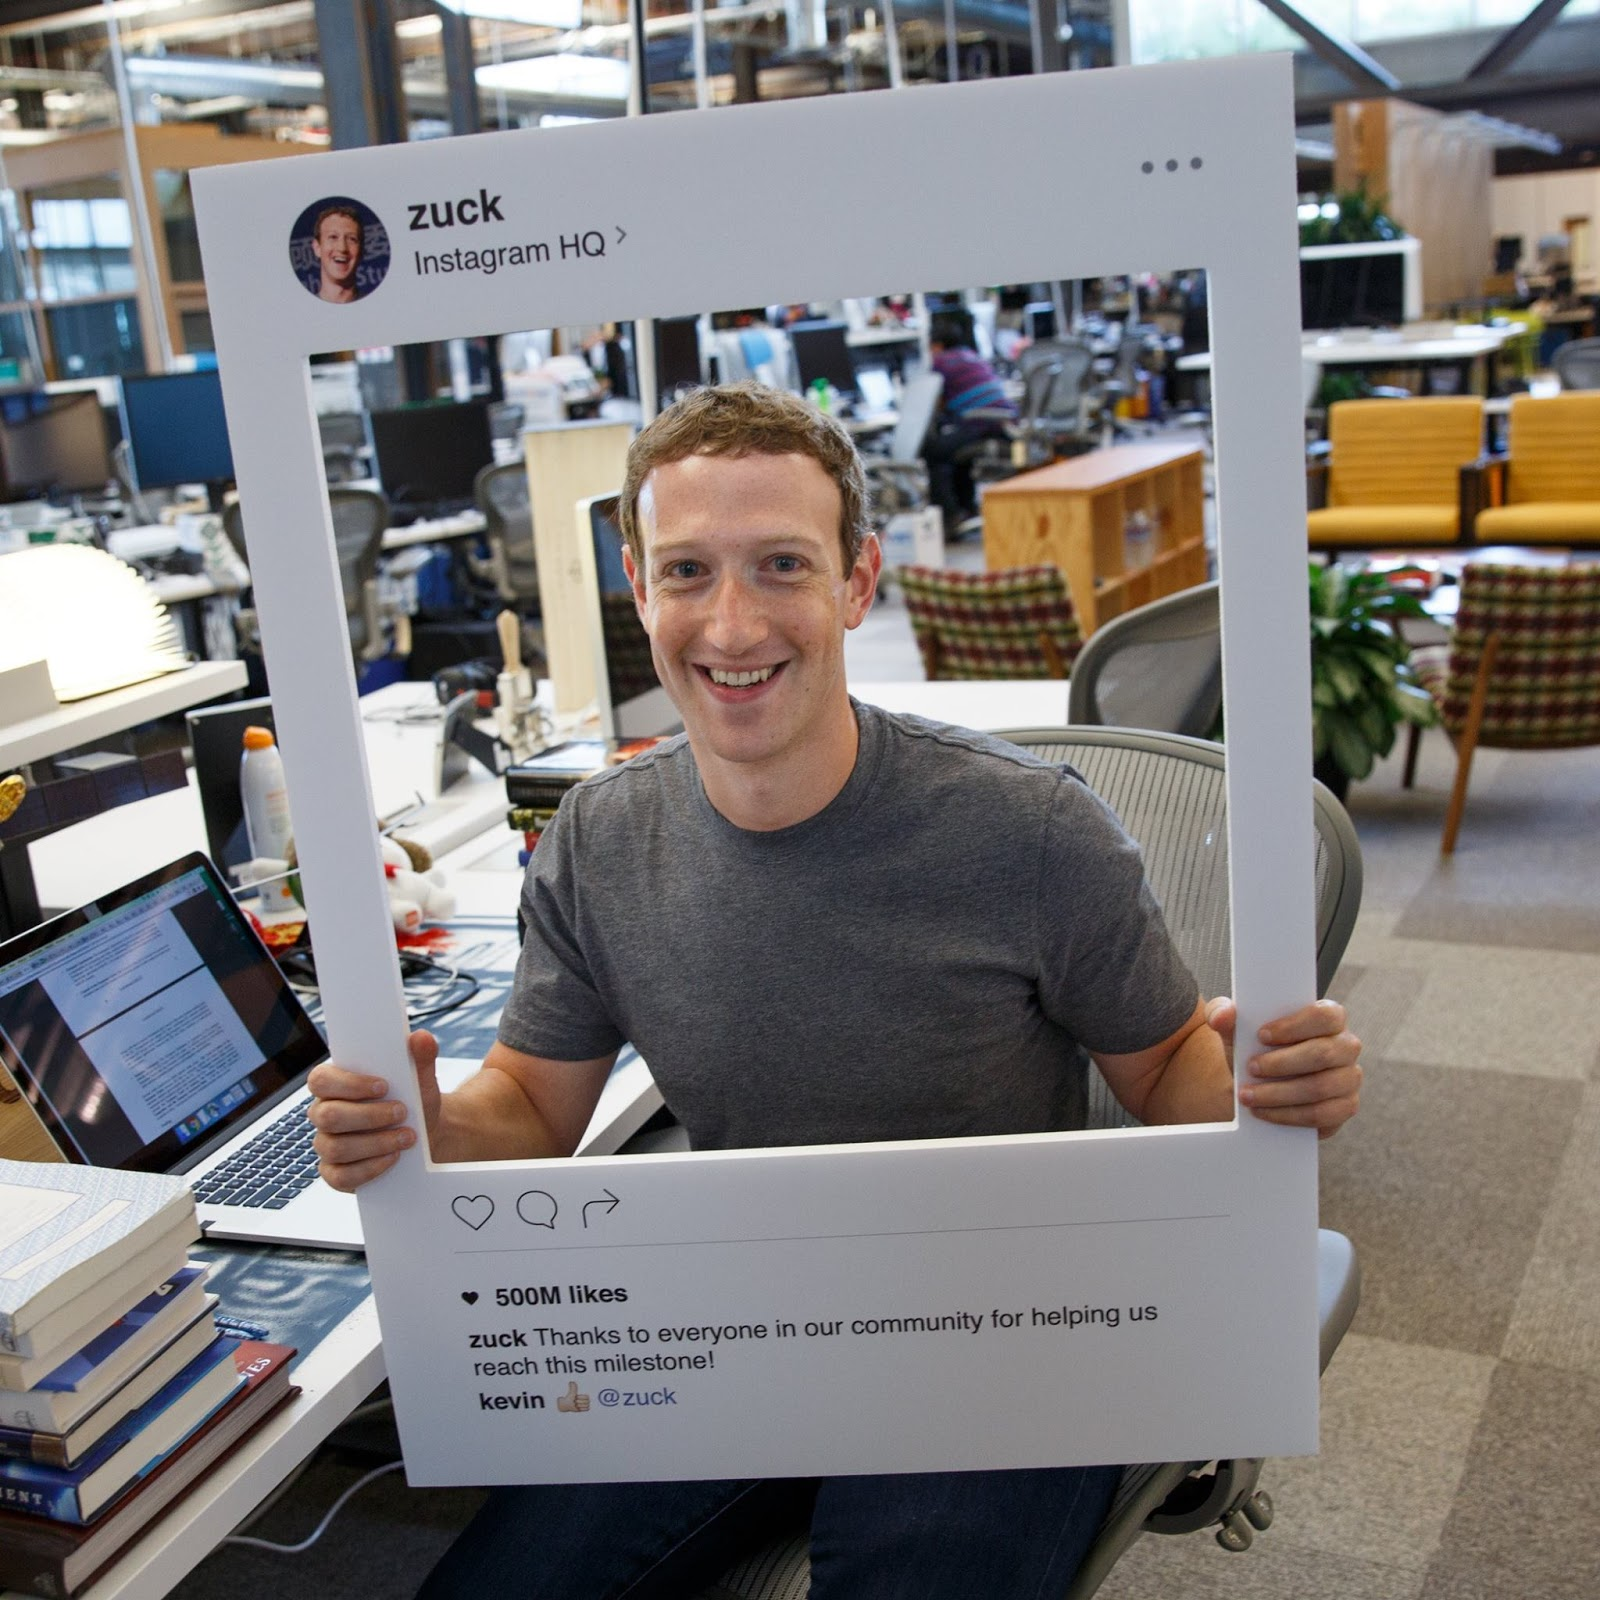 Mark Zuckerberg Covers his laptop camera and mic